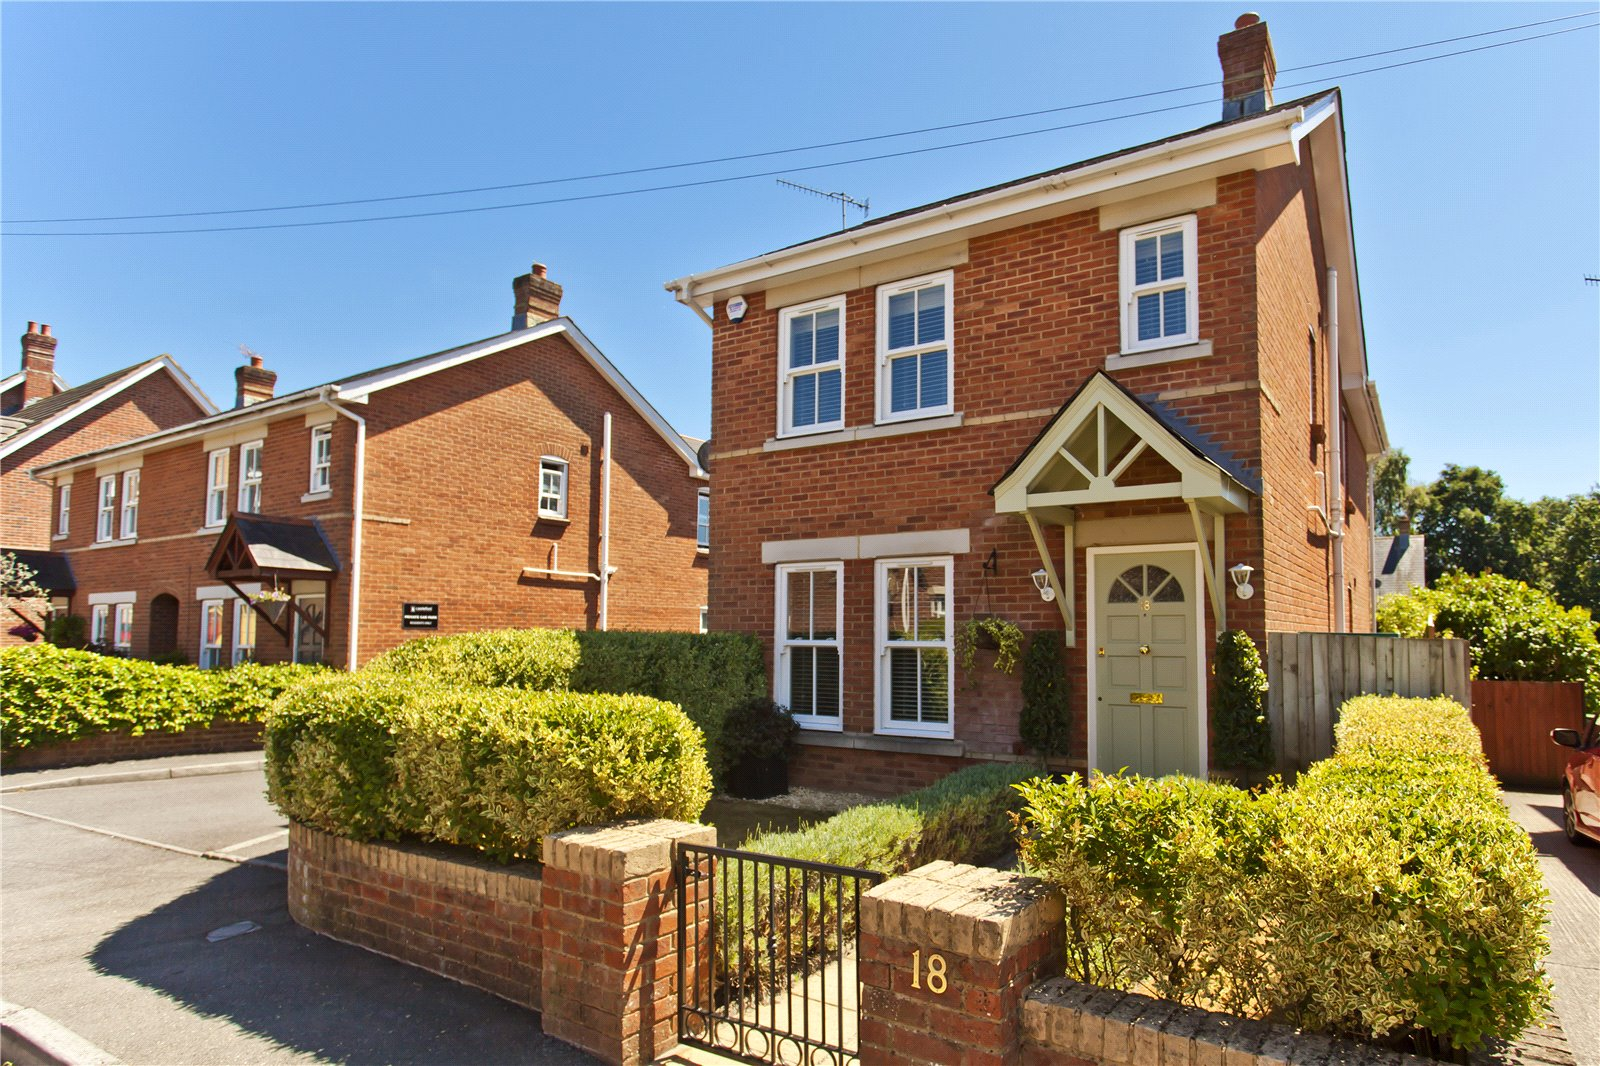 3 bed house for sale in Wessex Road, Lower Parkstone 0